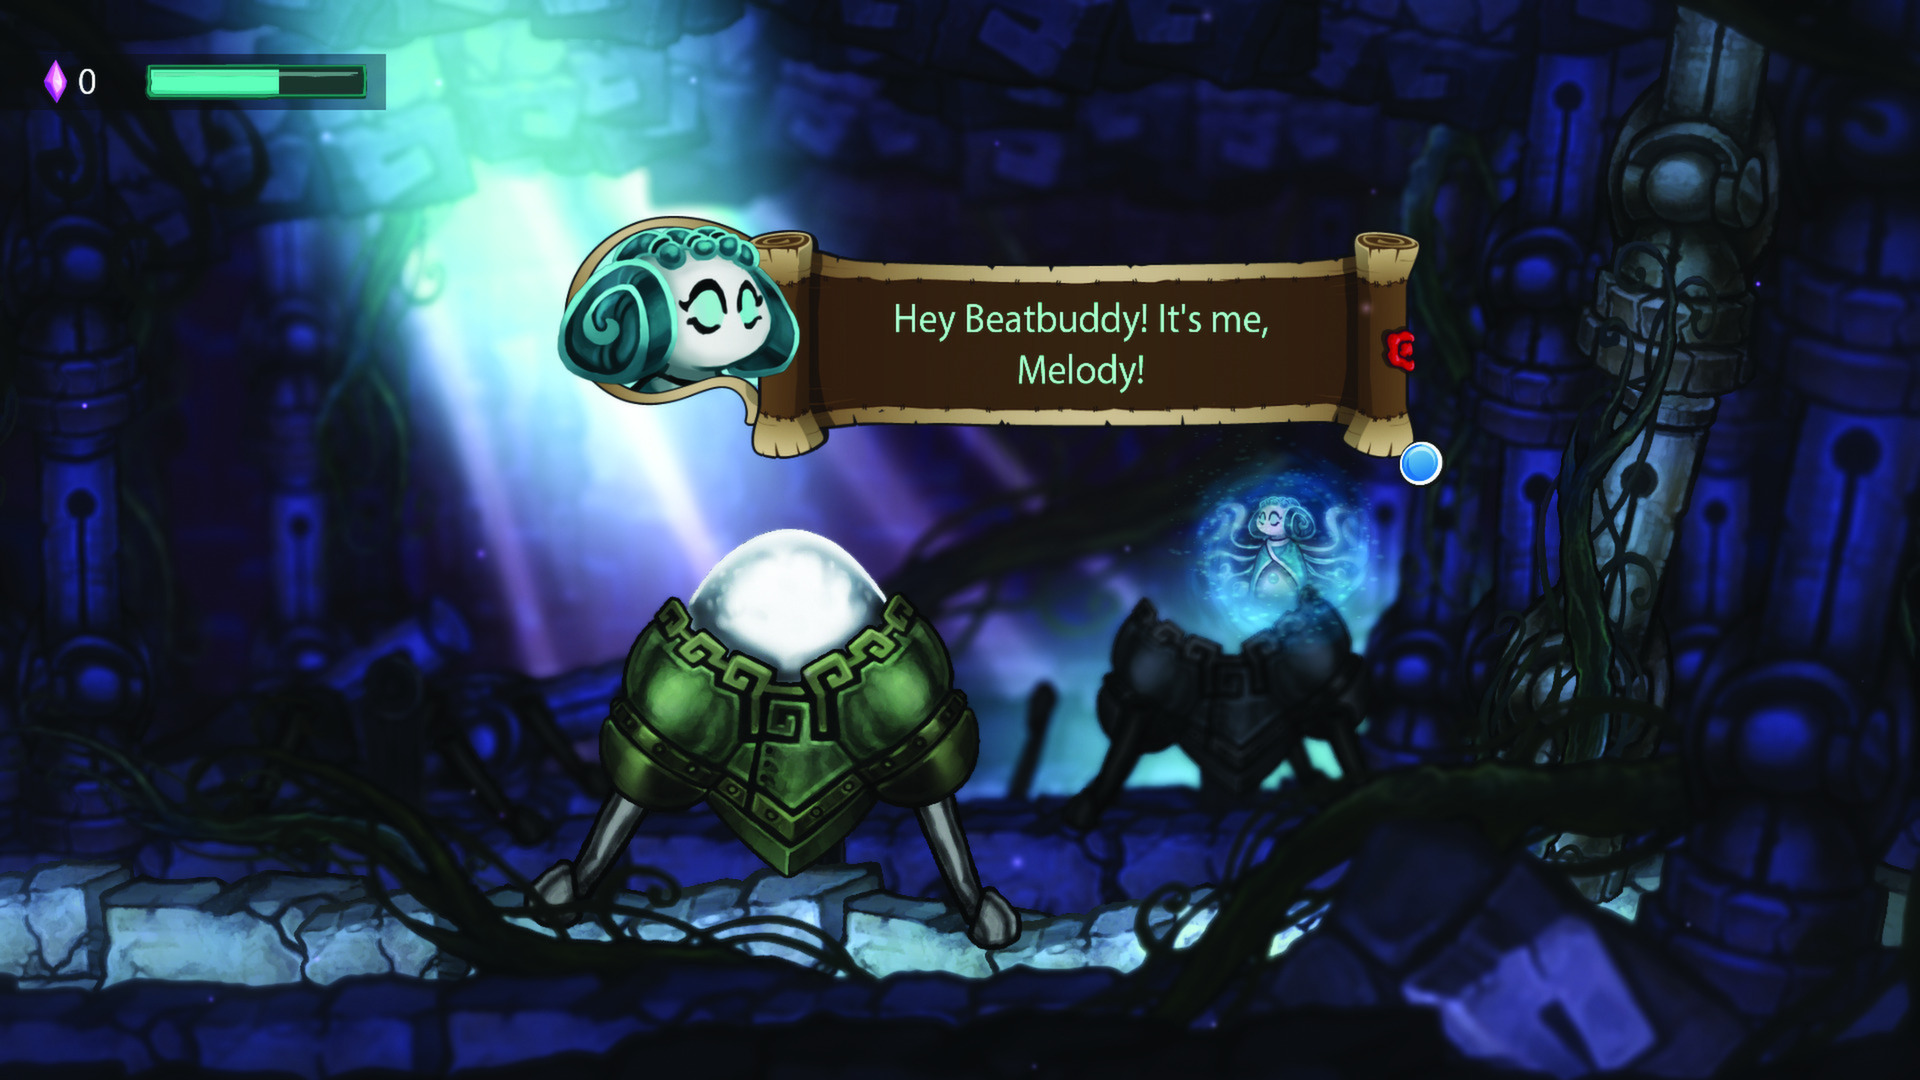 Beatbuddy: Tale of the Guardians Steam Key, Region Free